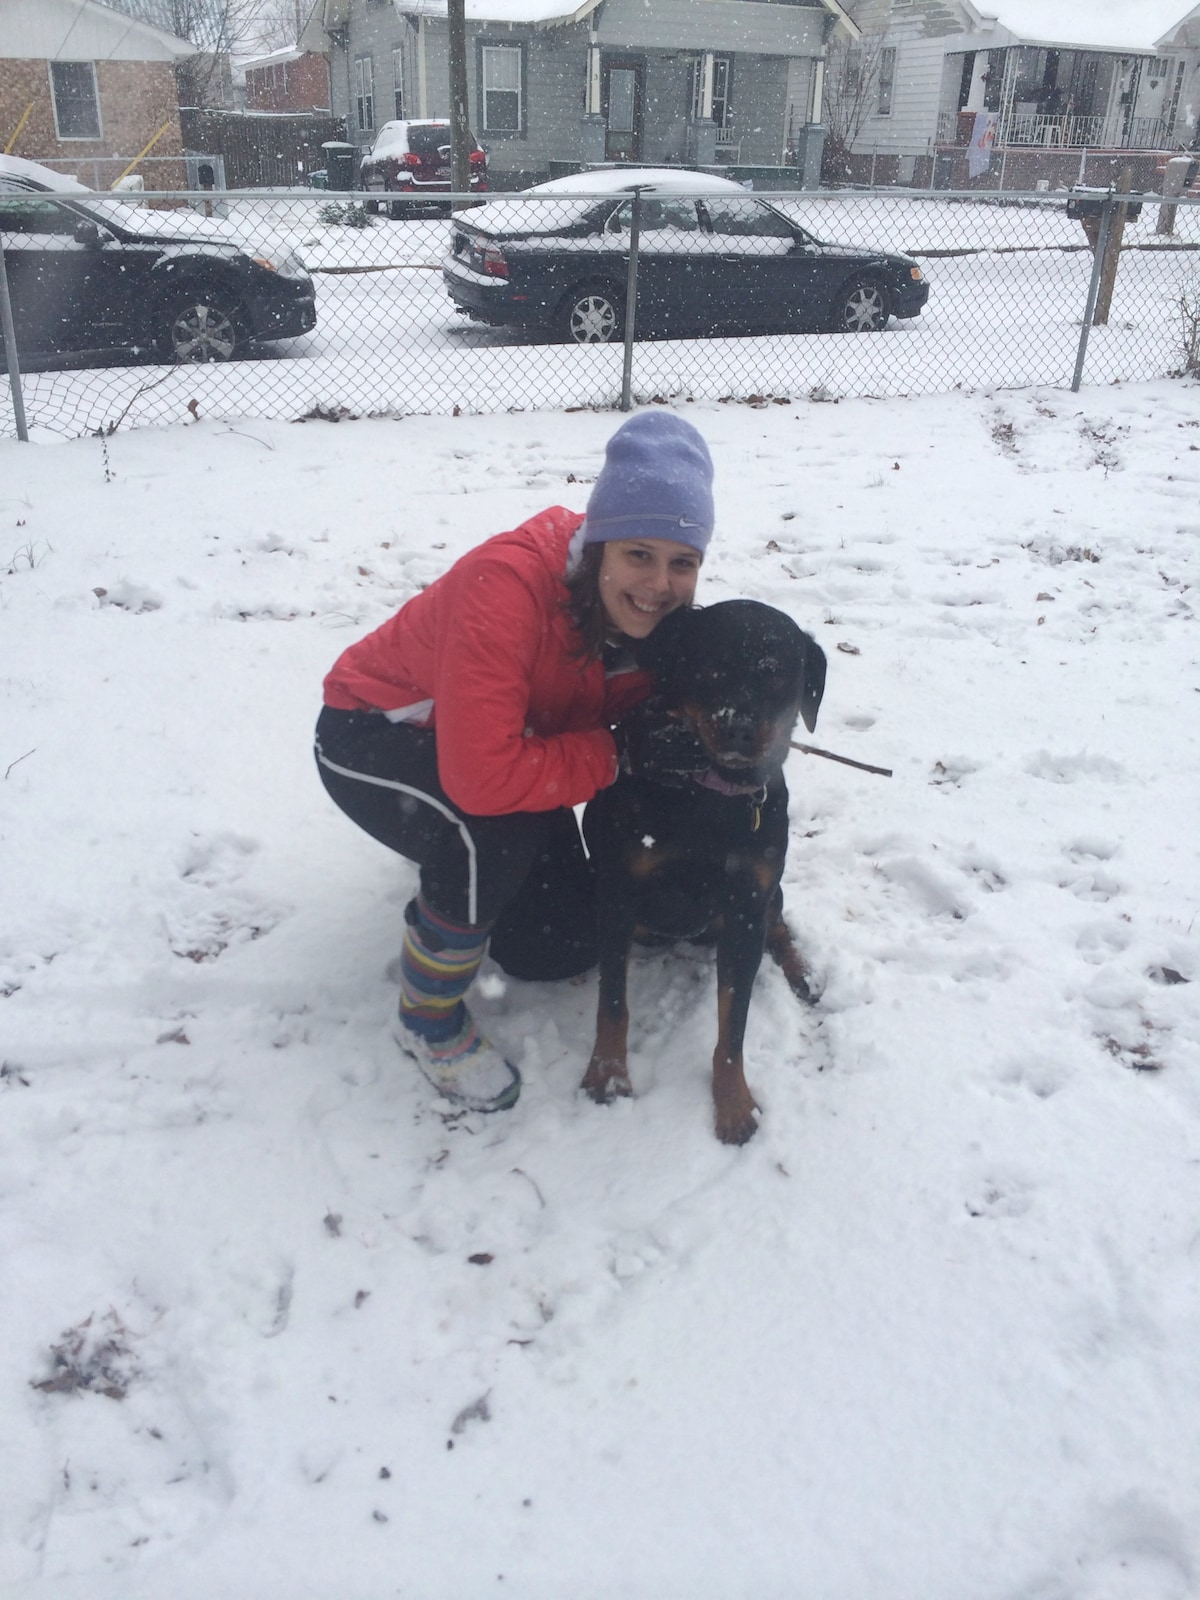 Play day in the snow!